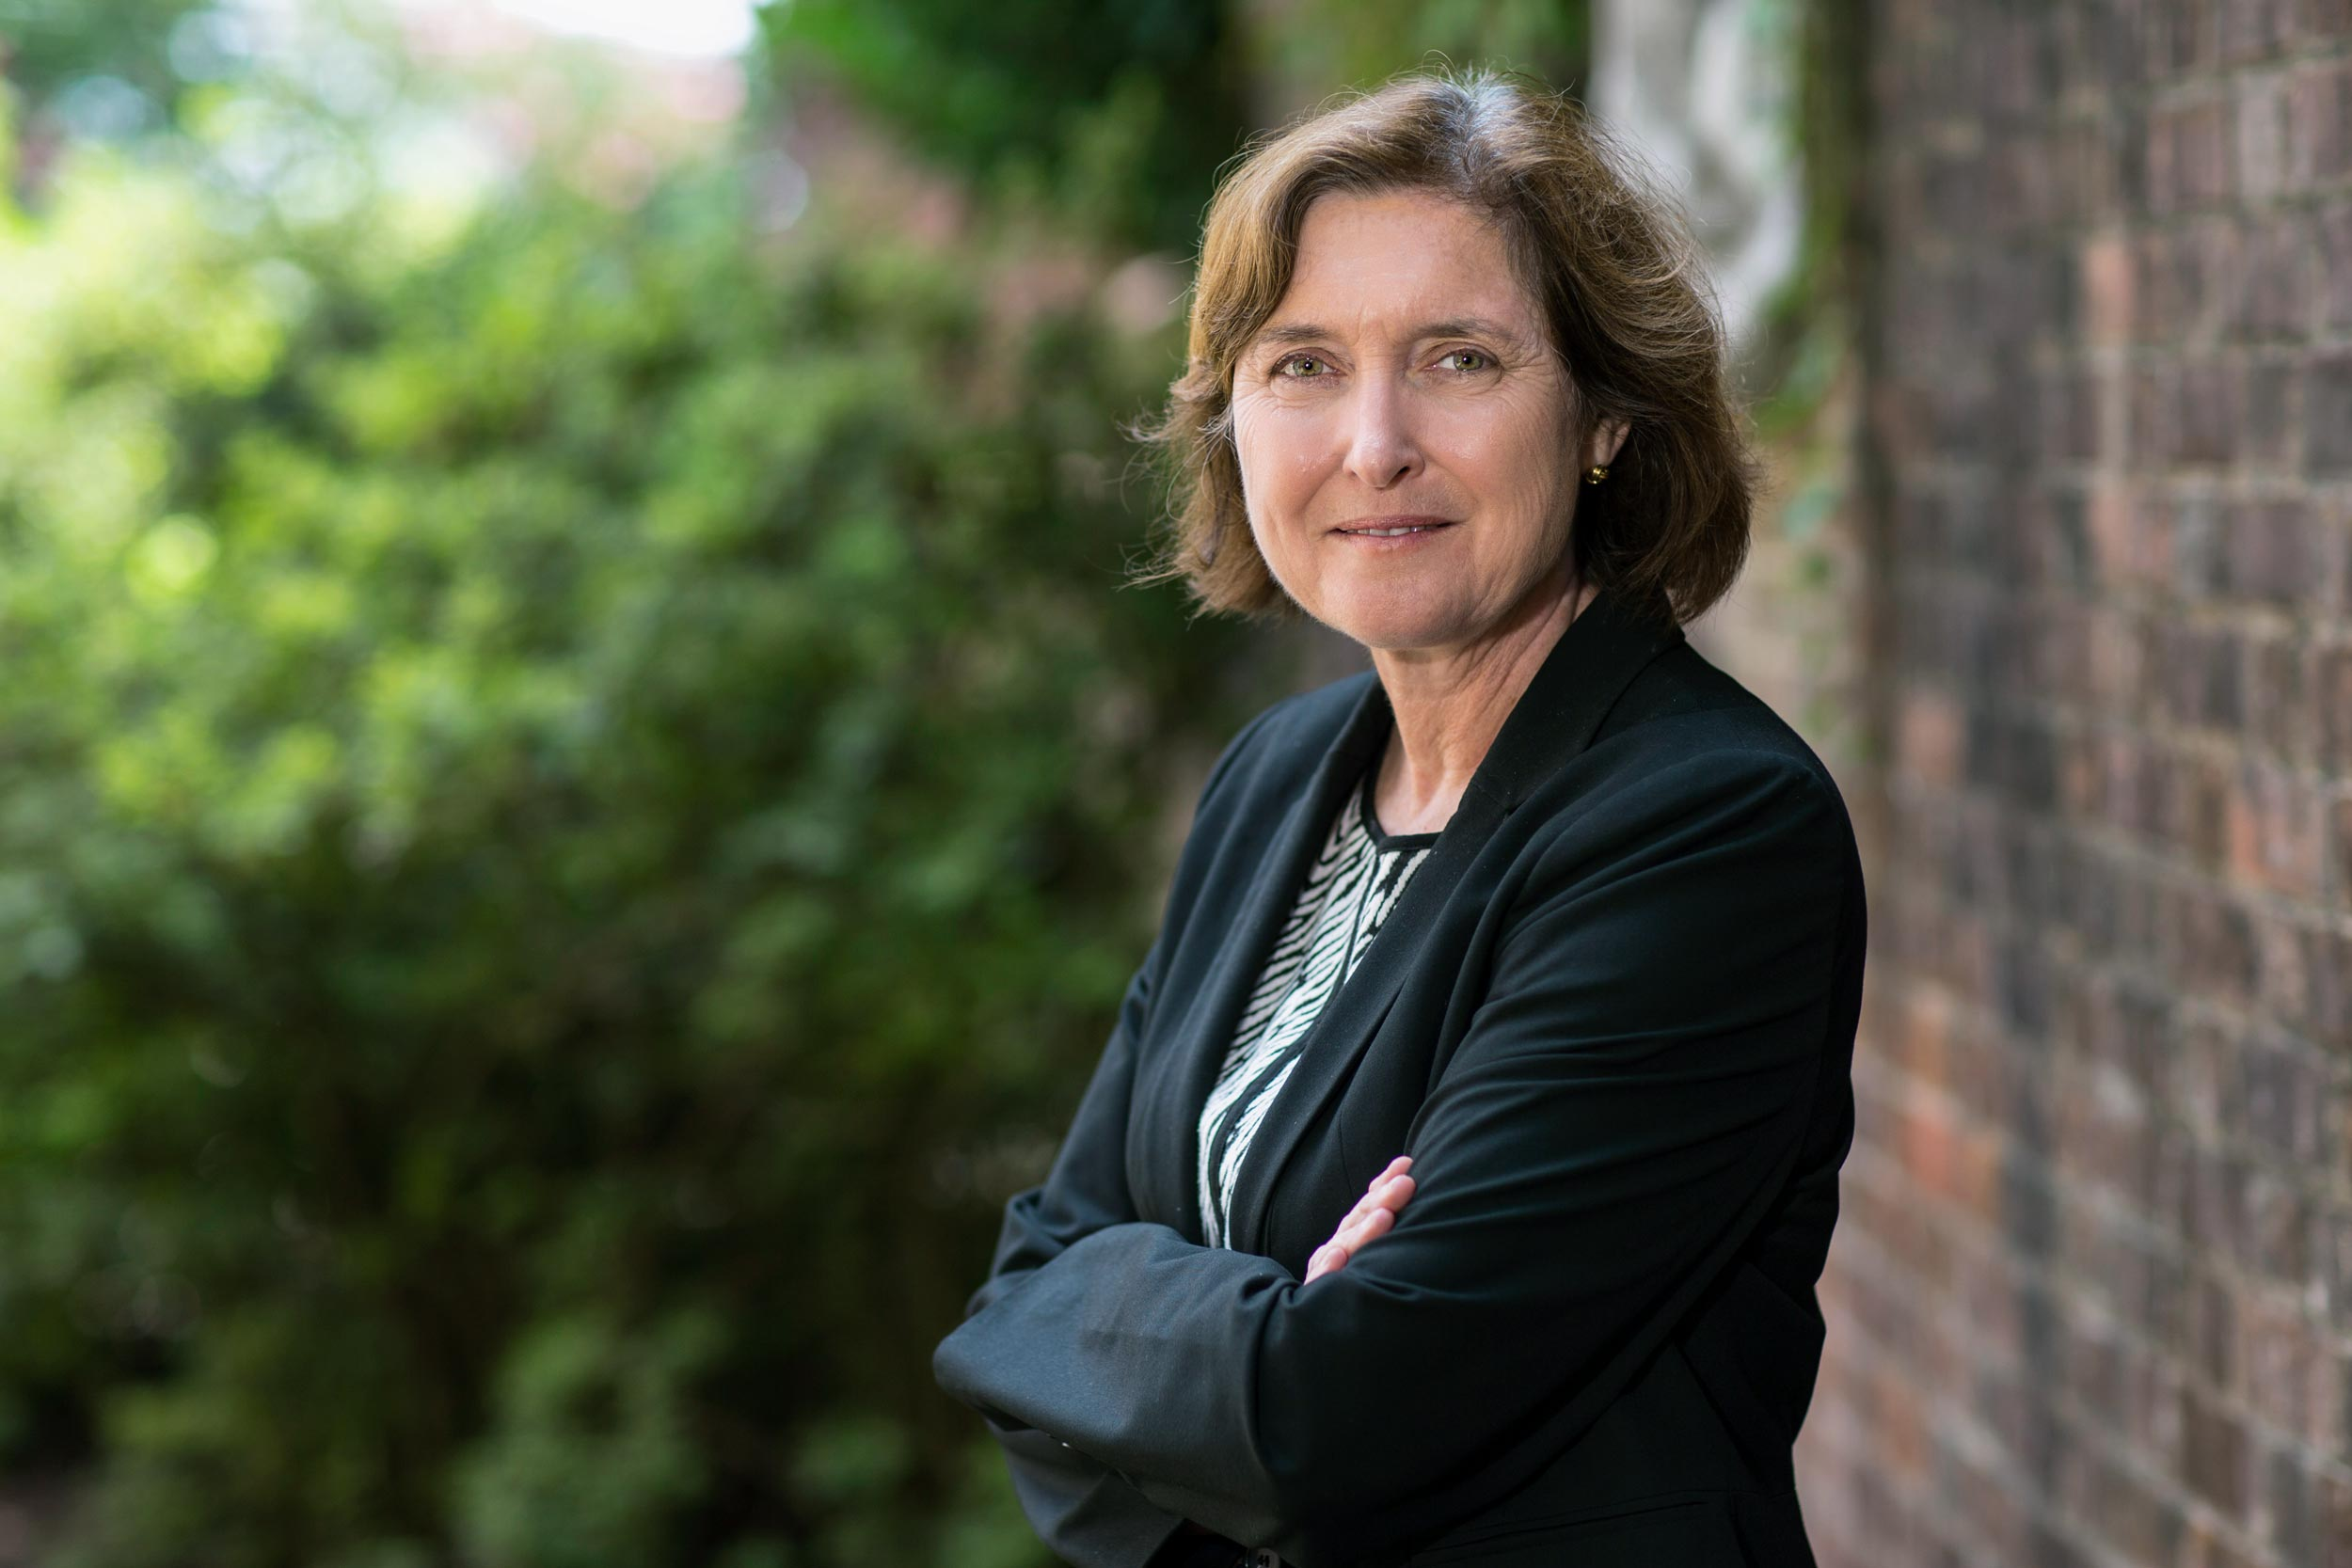 Lisa Reilly is an associate professor and directs the undergraduate program in architectural history in UVA's School of Architecture.